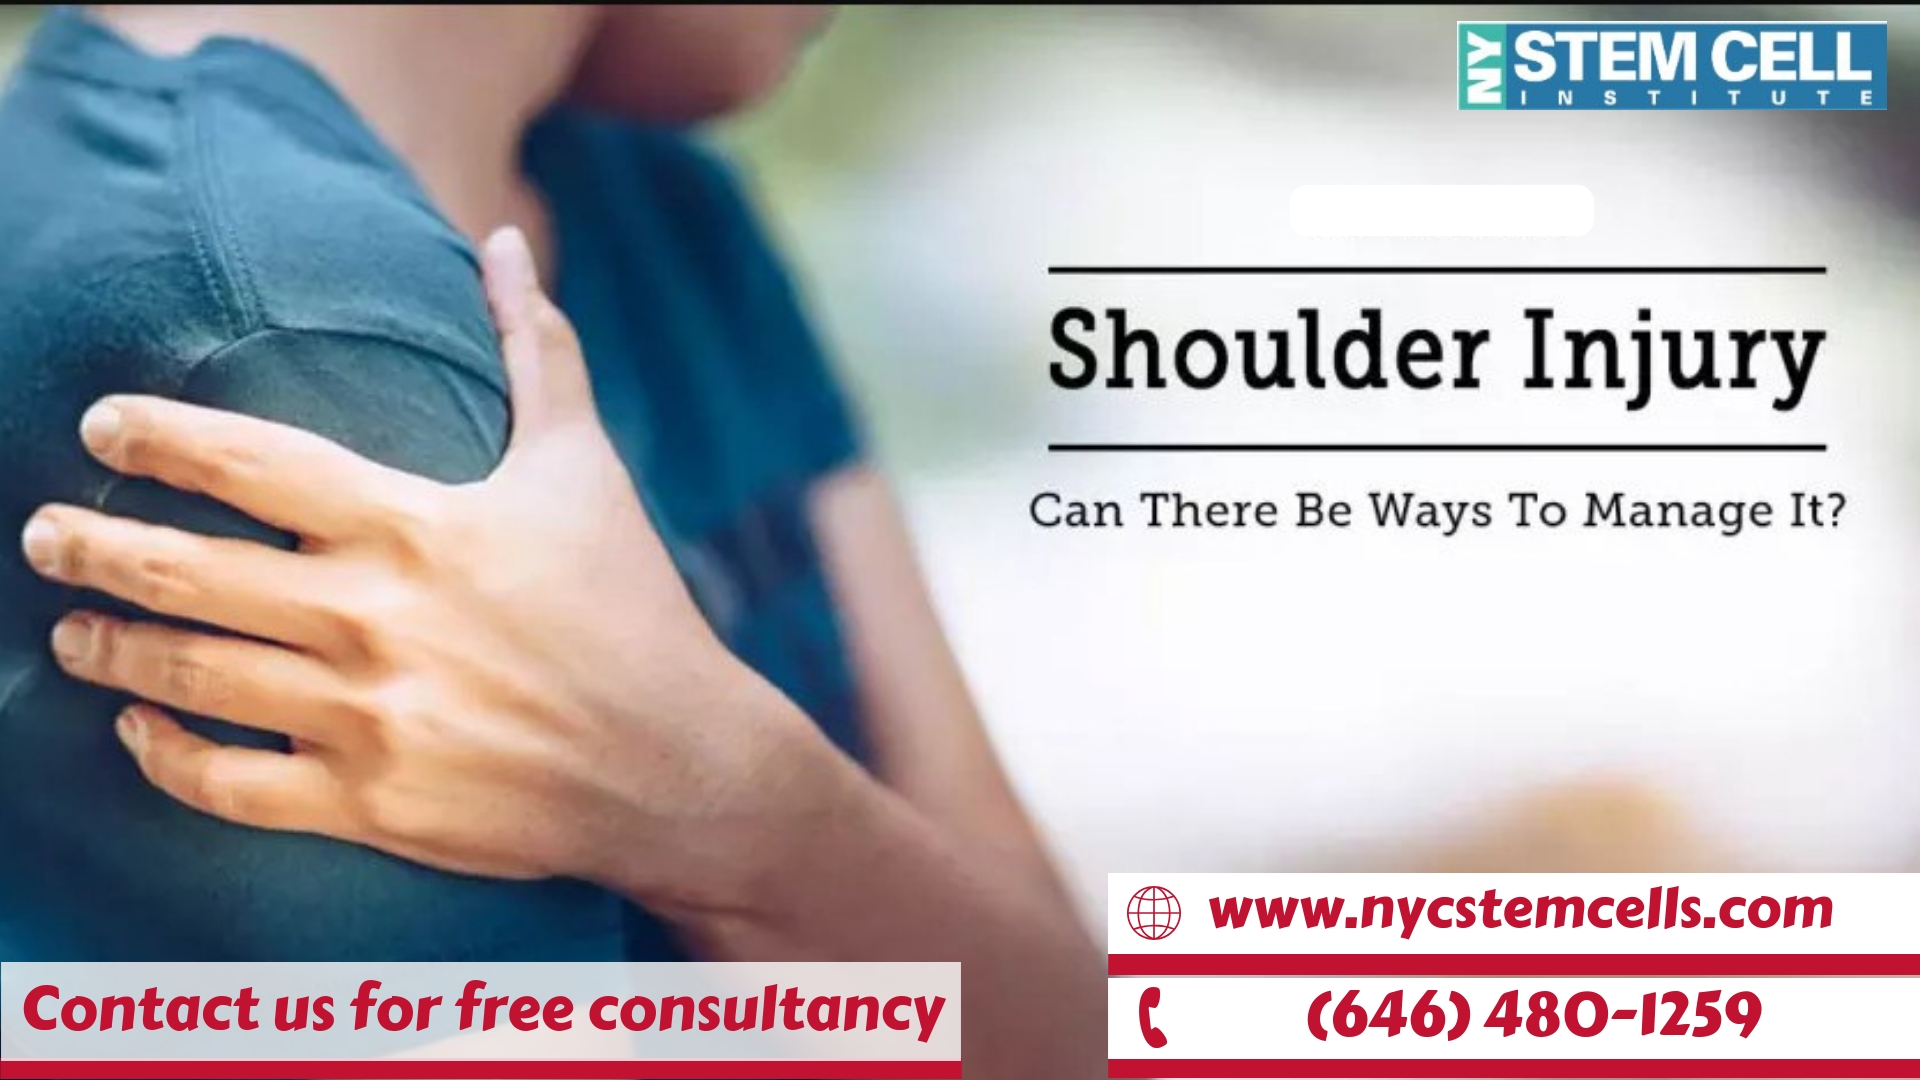 Are you suffering from Shoulder Pain? and looking for best Treatment in new york??